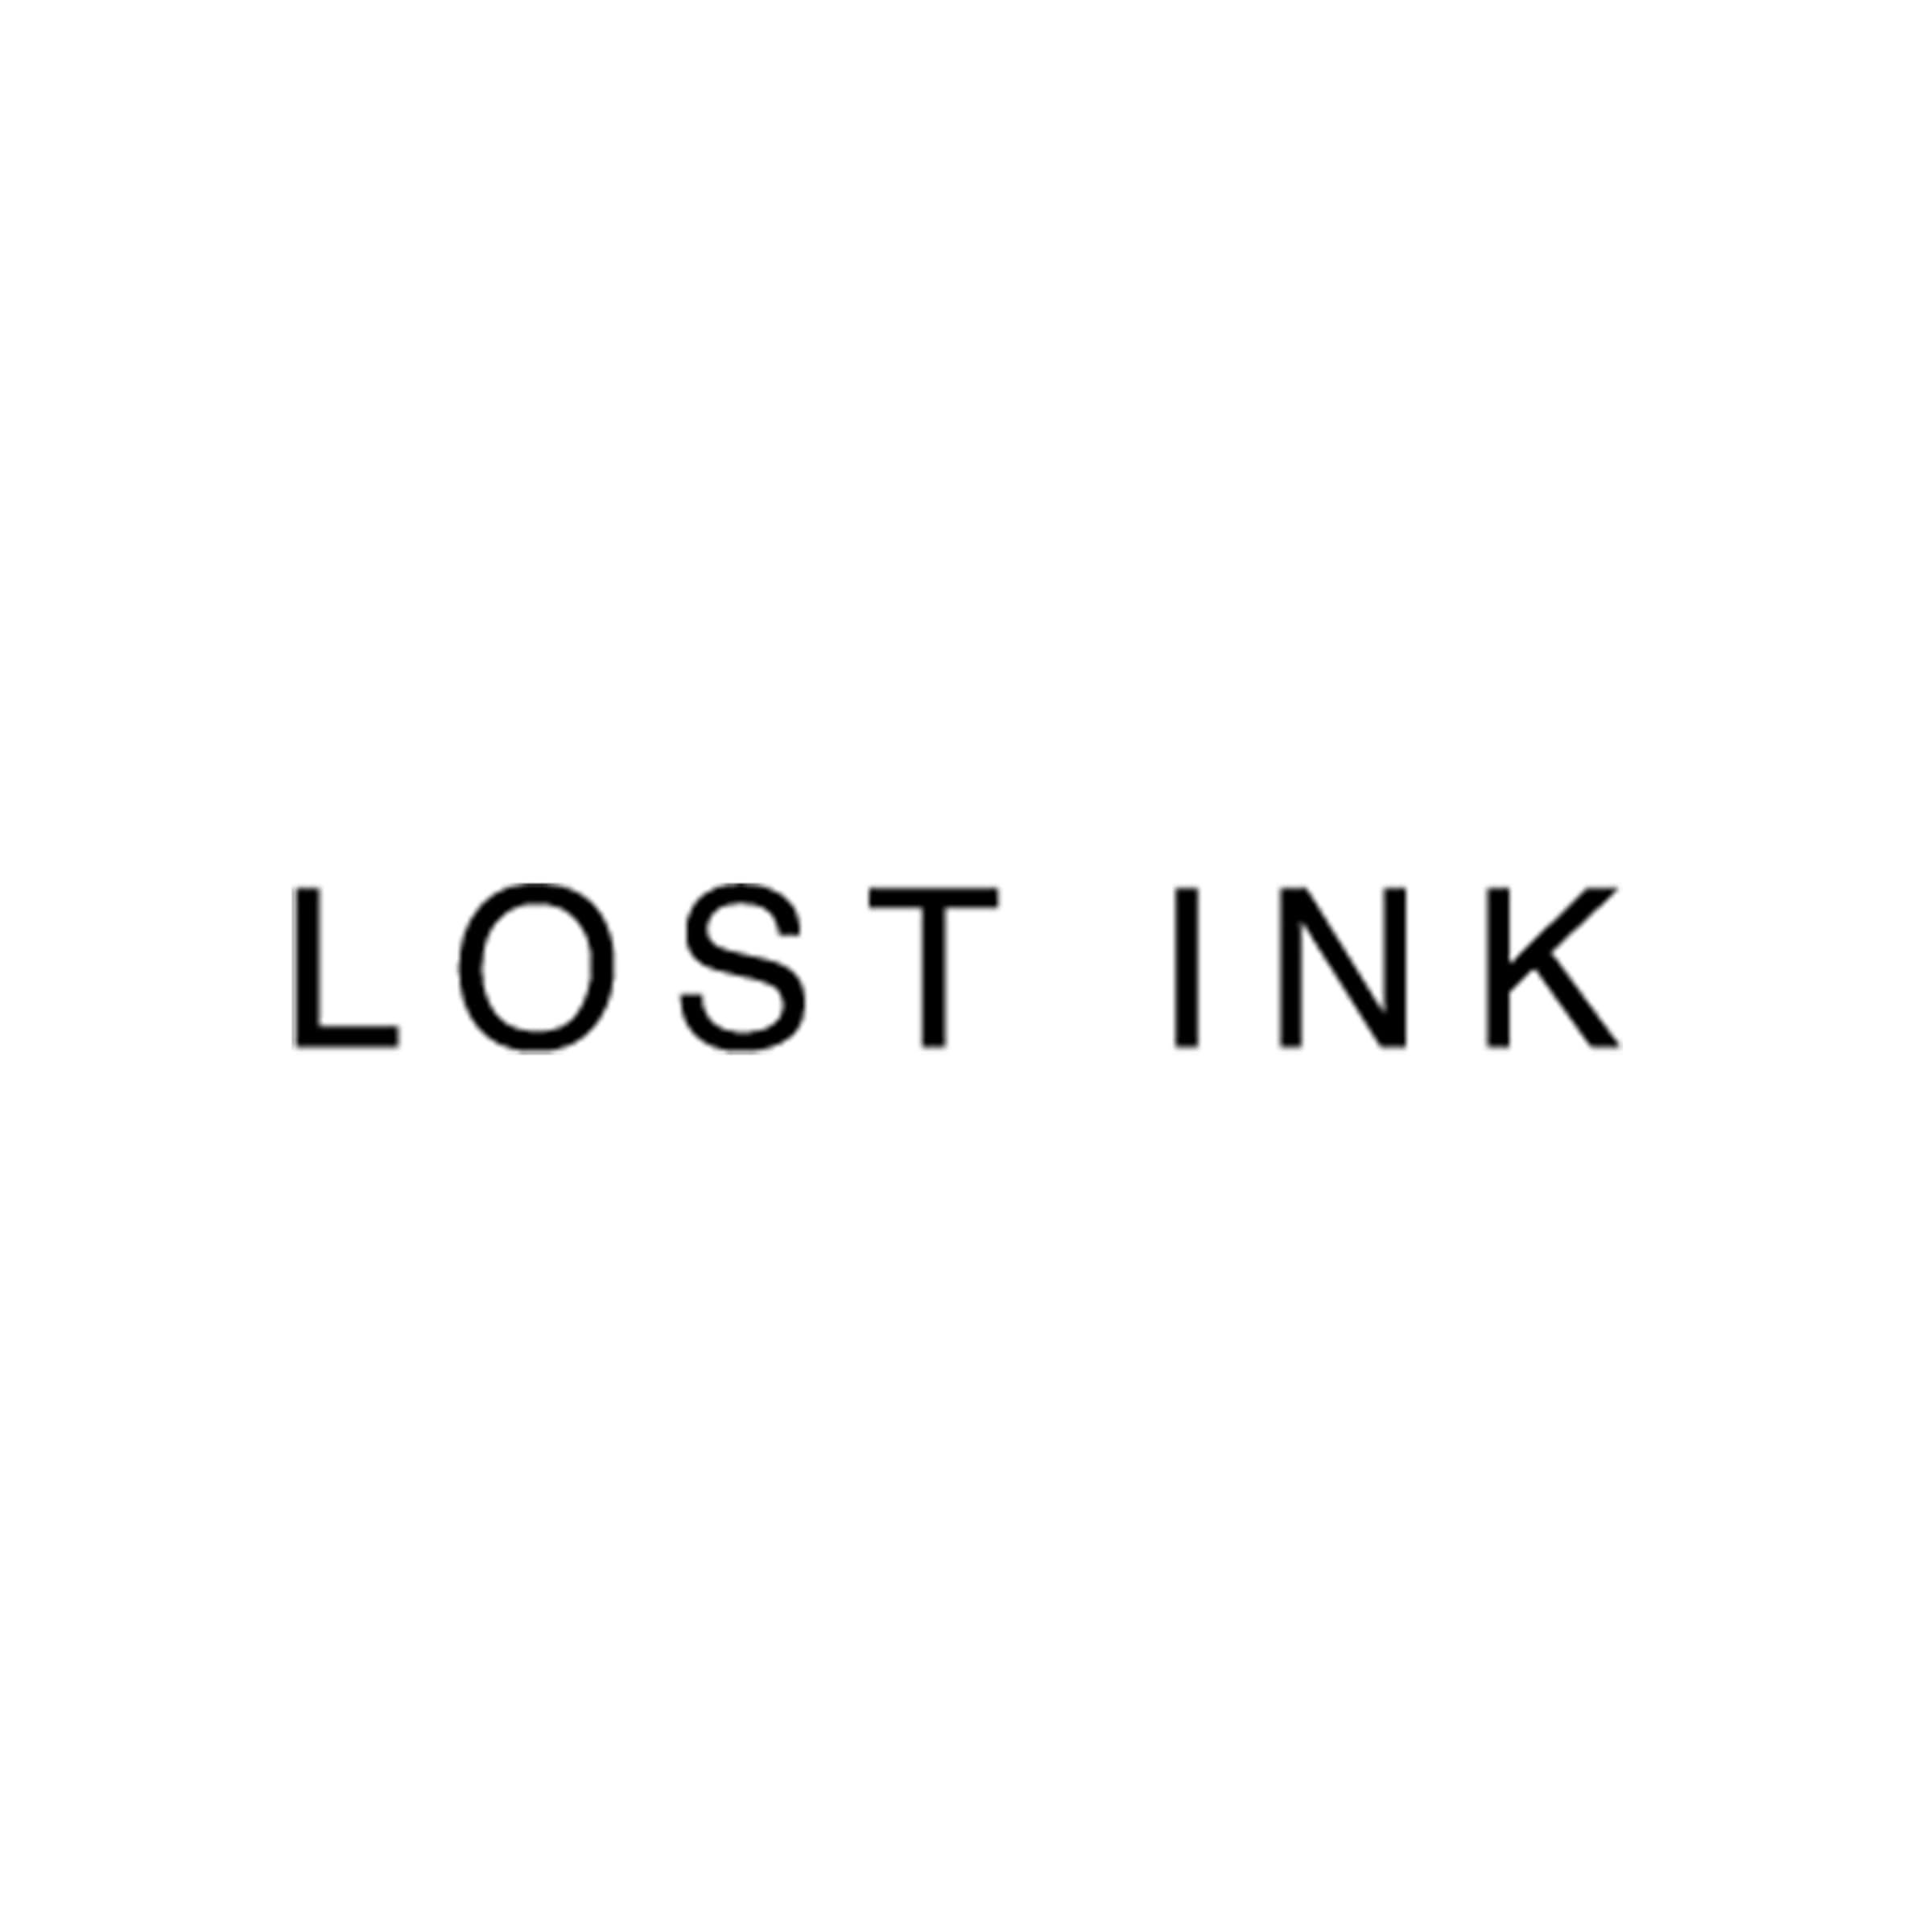 Lost Ink